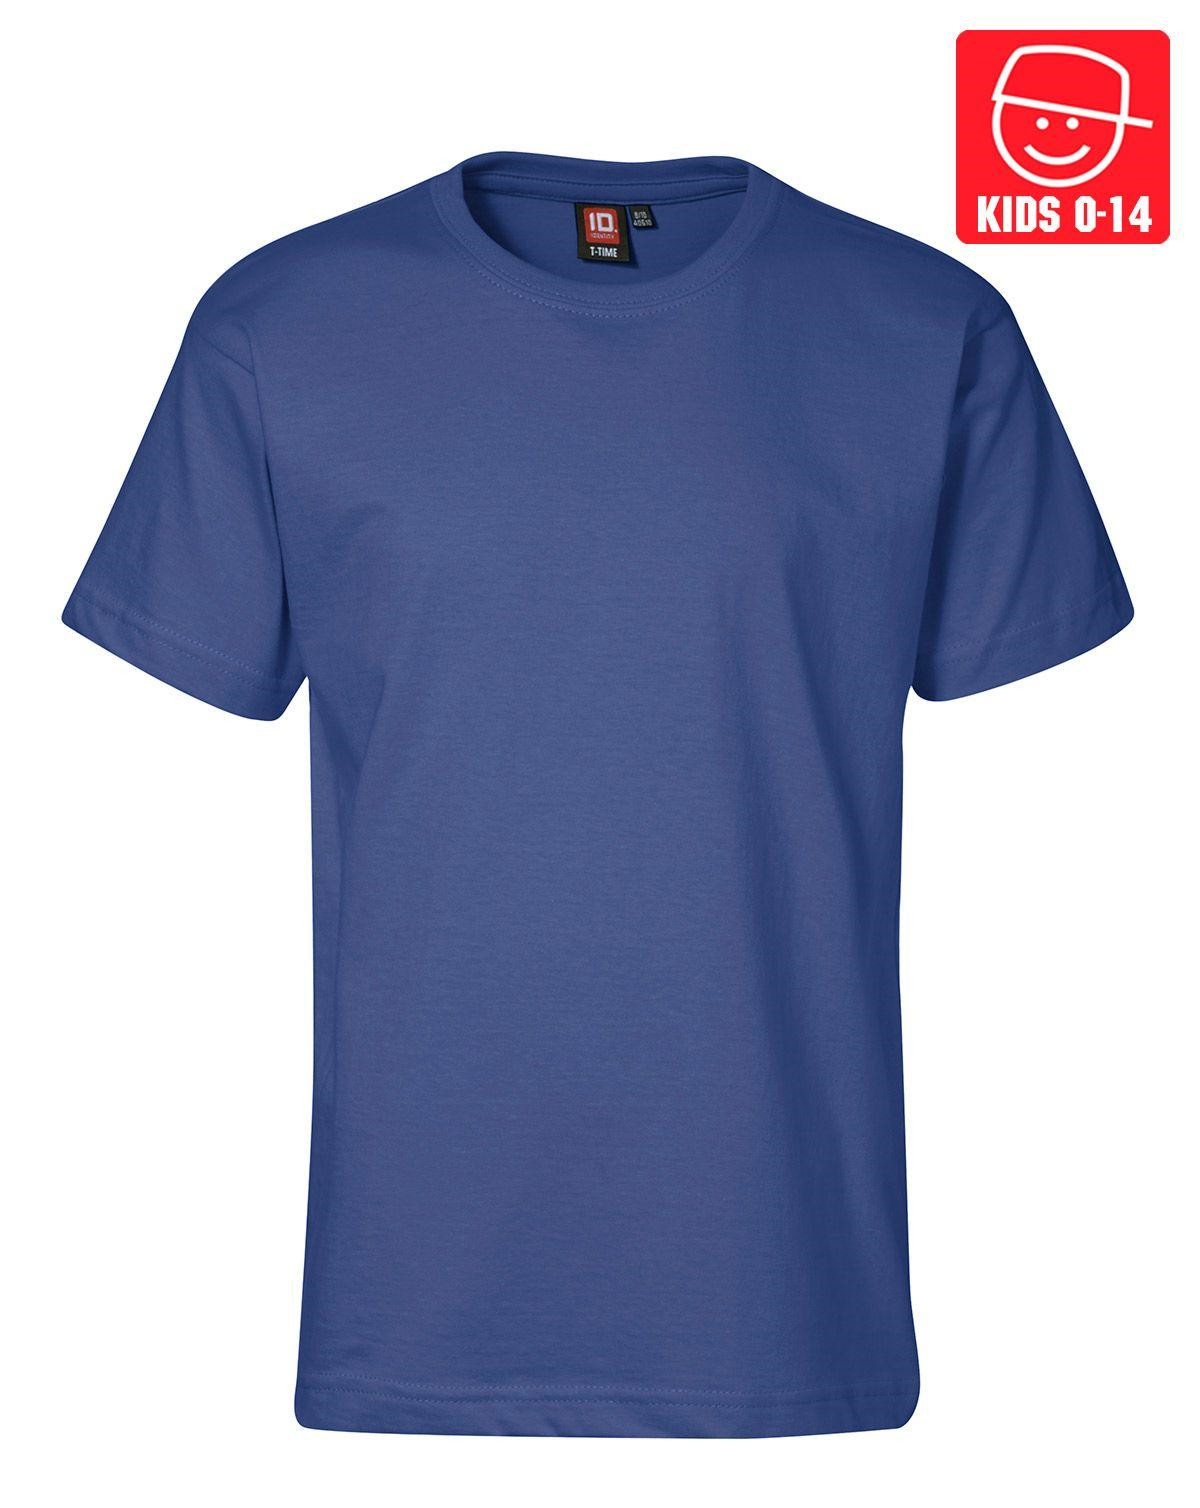 Image of   ID T-TIME T-shirt (Kongeblå, 158)